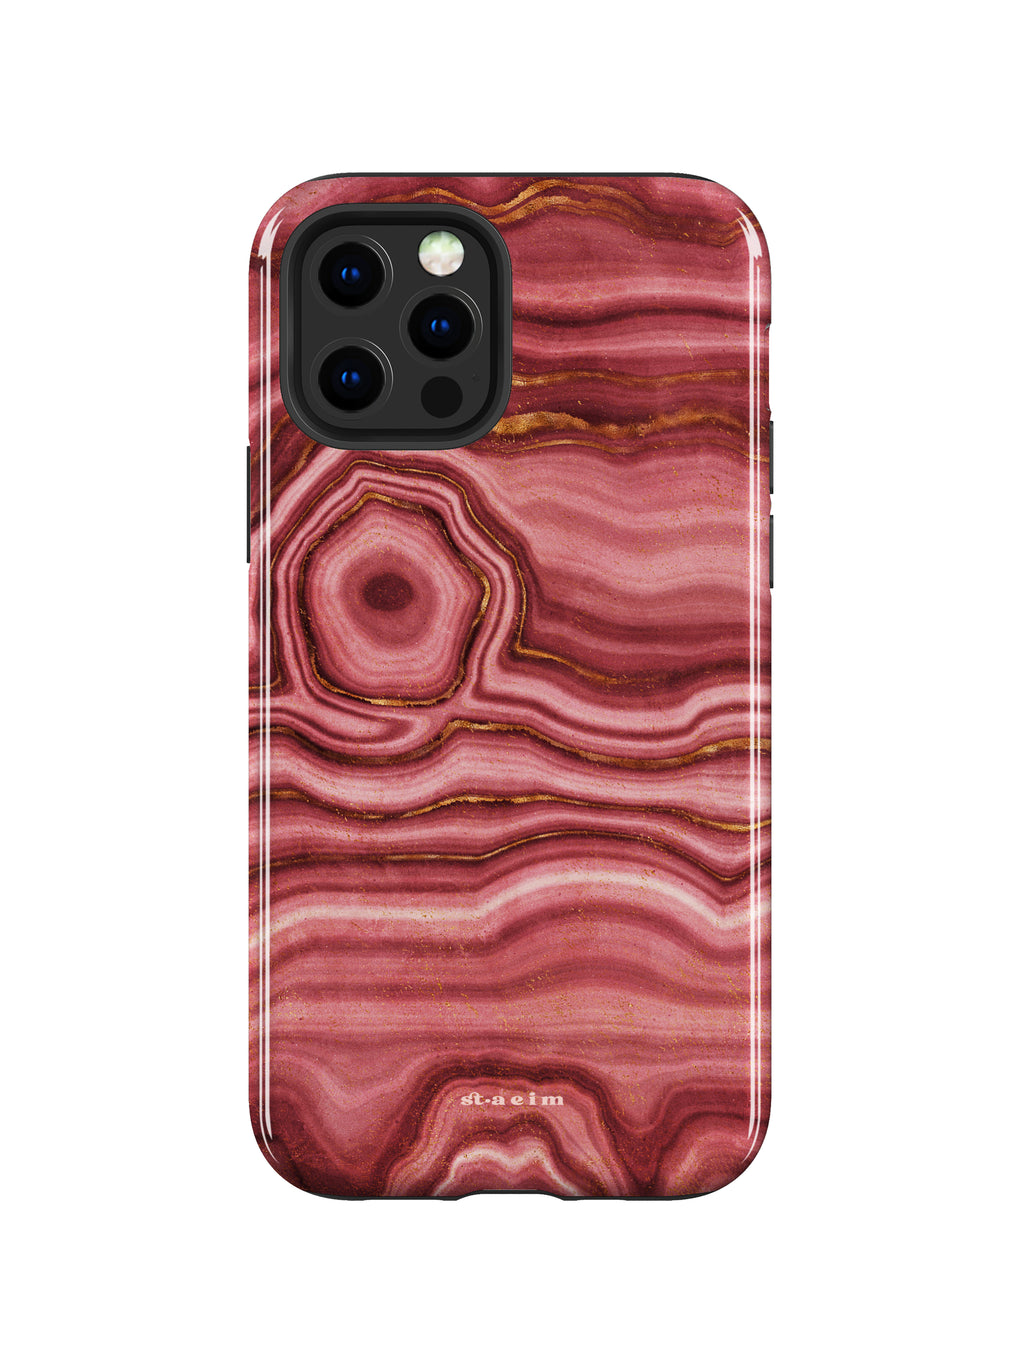 STAEIM | The Flow Agate Marble iPhone 12 Pro Max Case